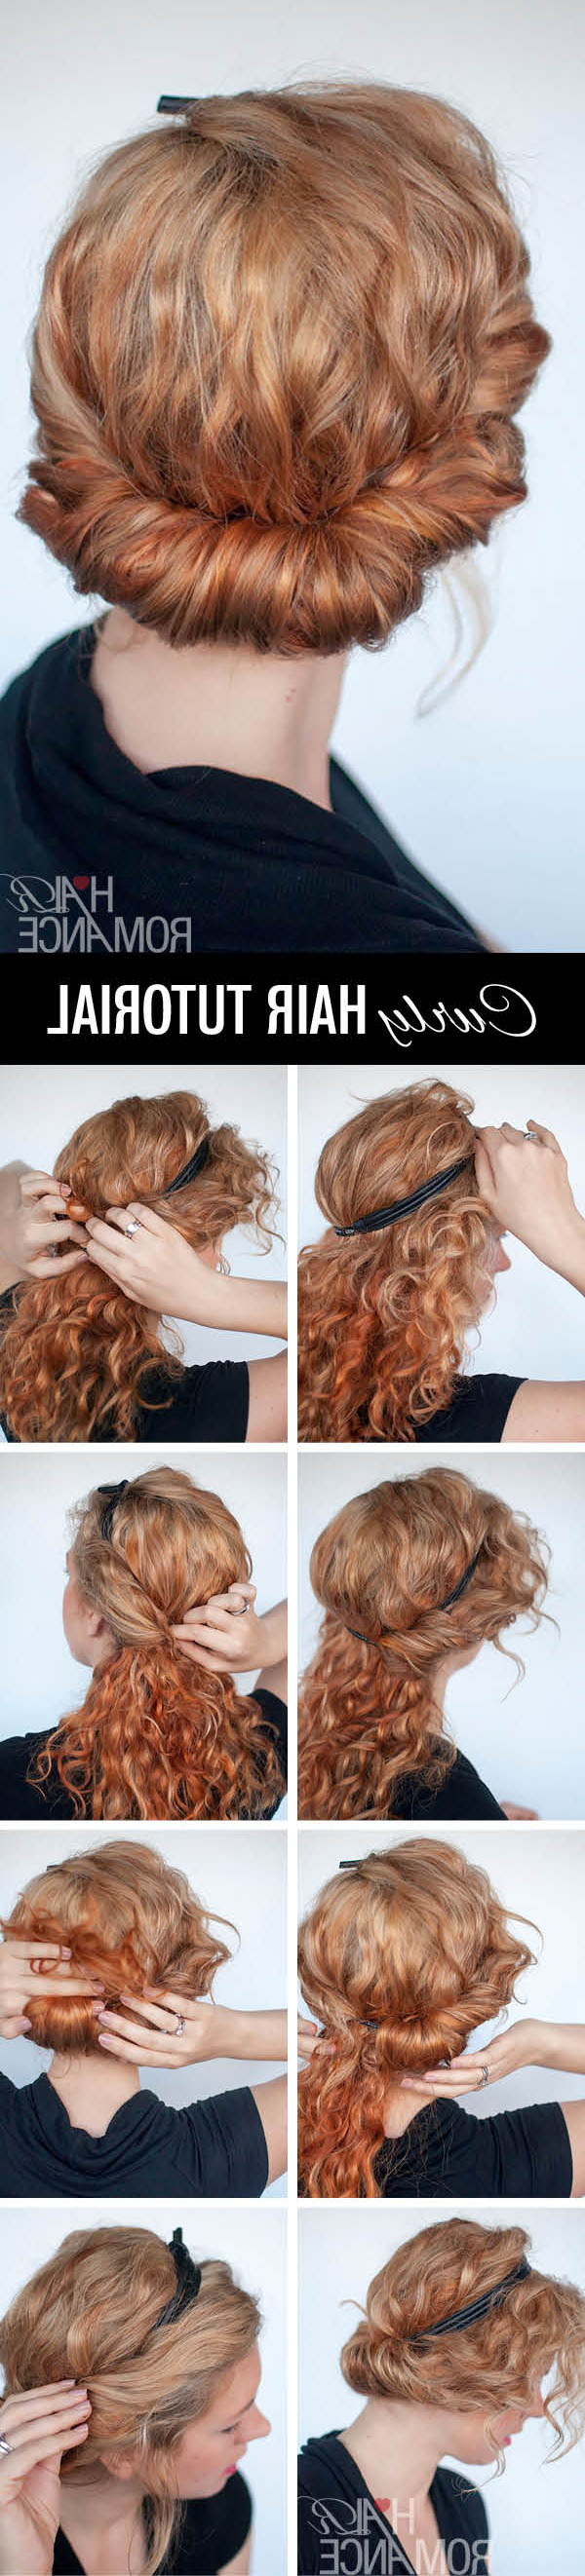 2018 Medium Hairstyles For Special Occasions For Elegant Hairstyles For Special Occasions (View 6 of 20)